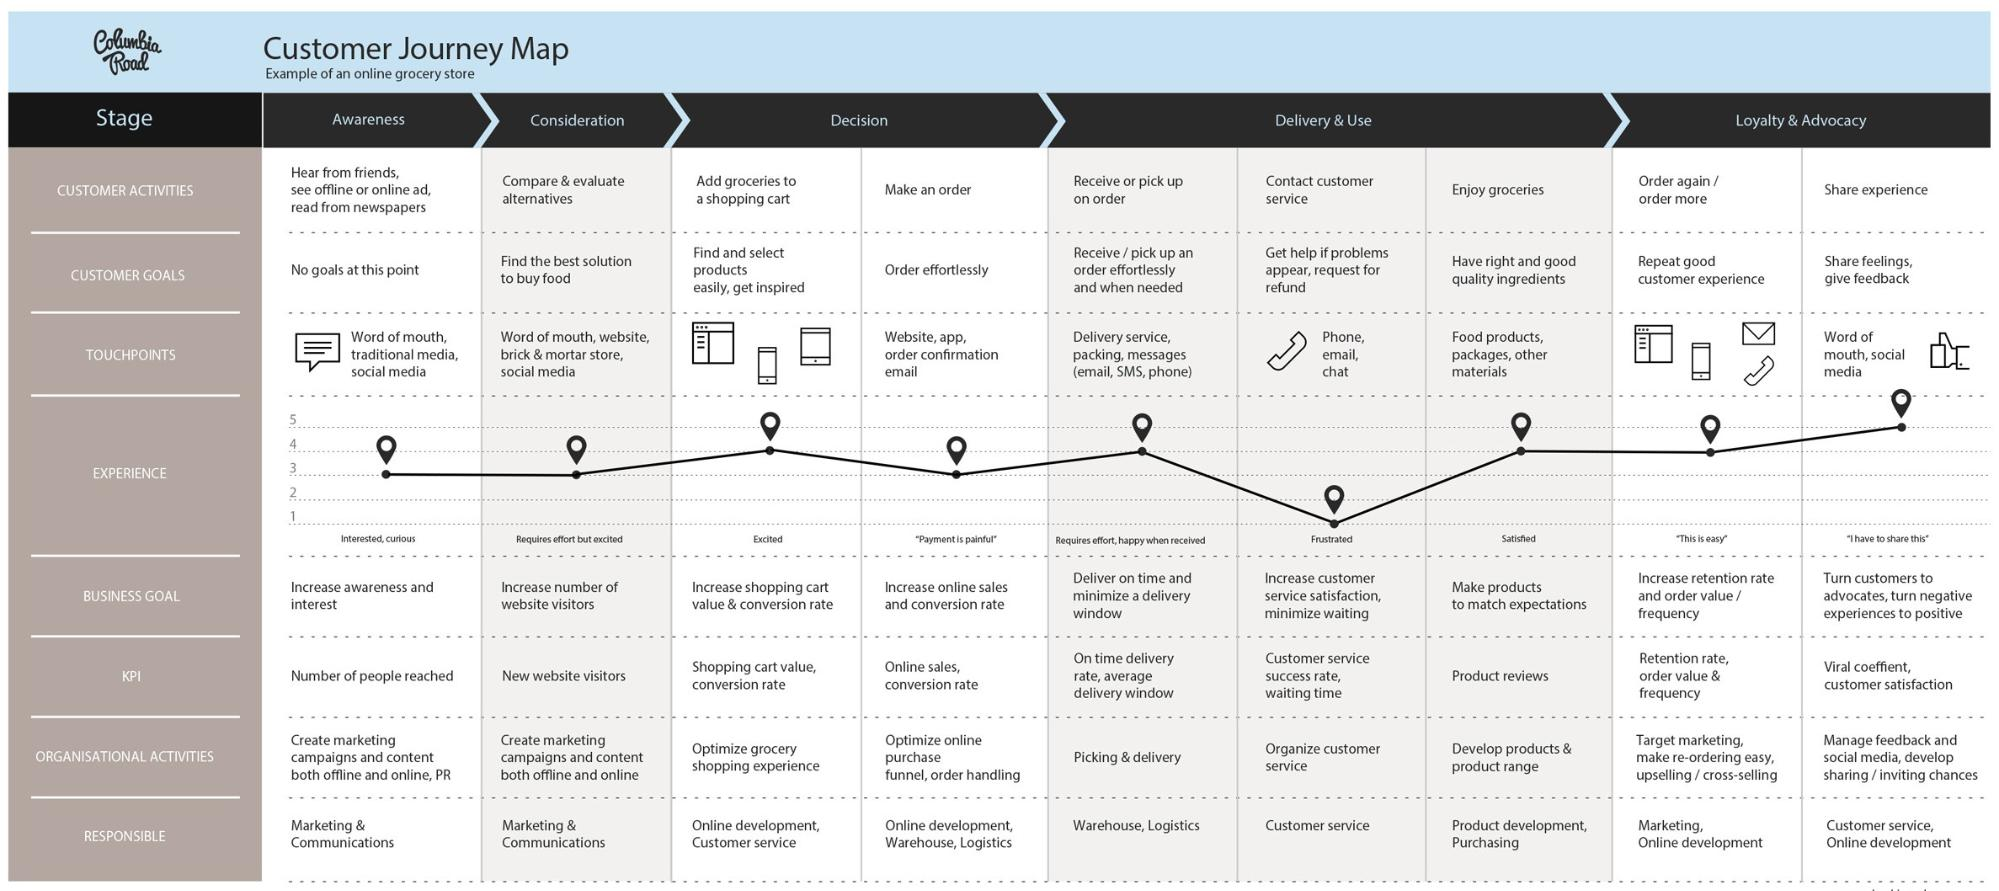 Customer journey maps are part of prudent UX design techniques.